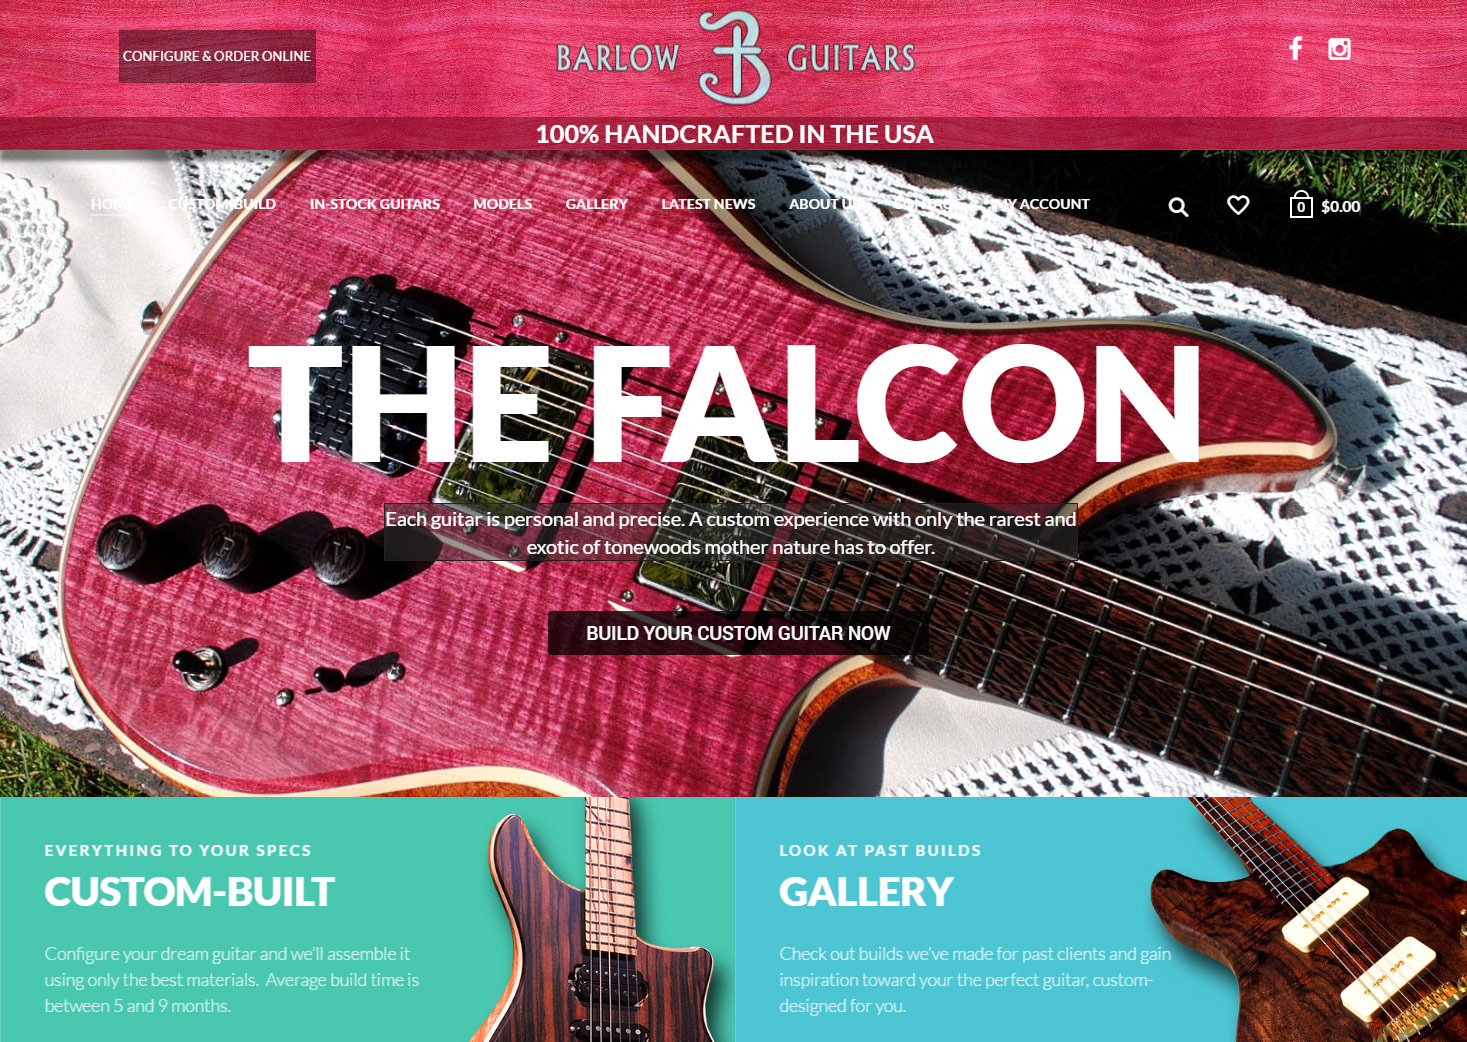 handcrafted boutique electric guitars rare and exotic tonewoods usa made barlow guitars. Black Bedroom Furniture Sets. Home Design Ideas